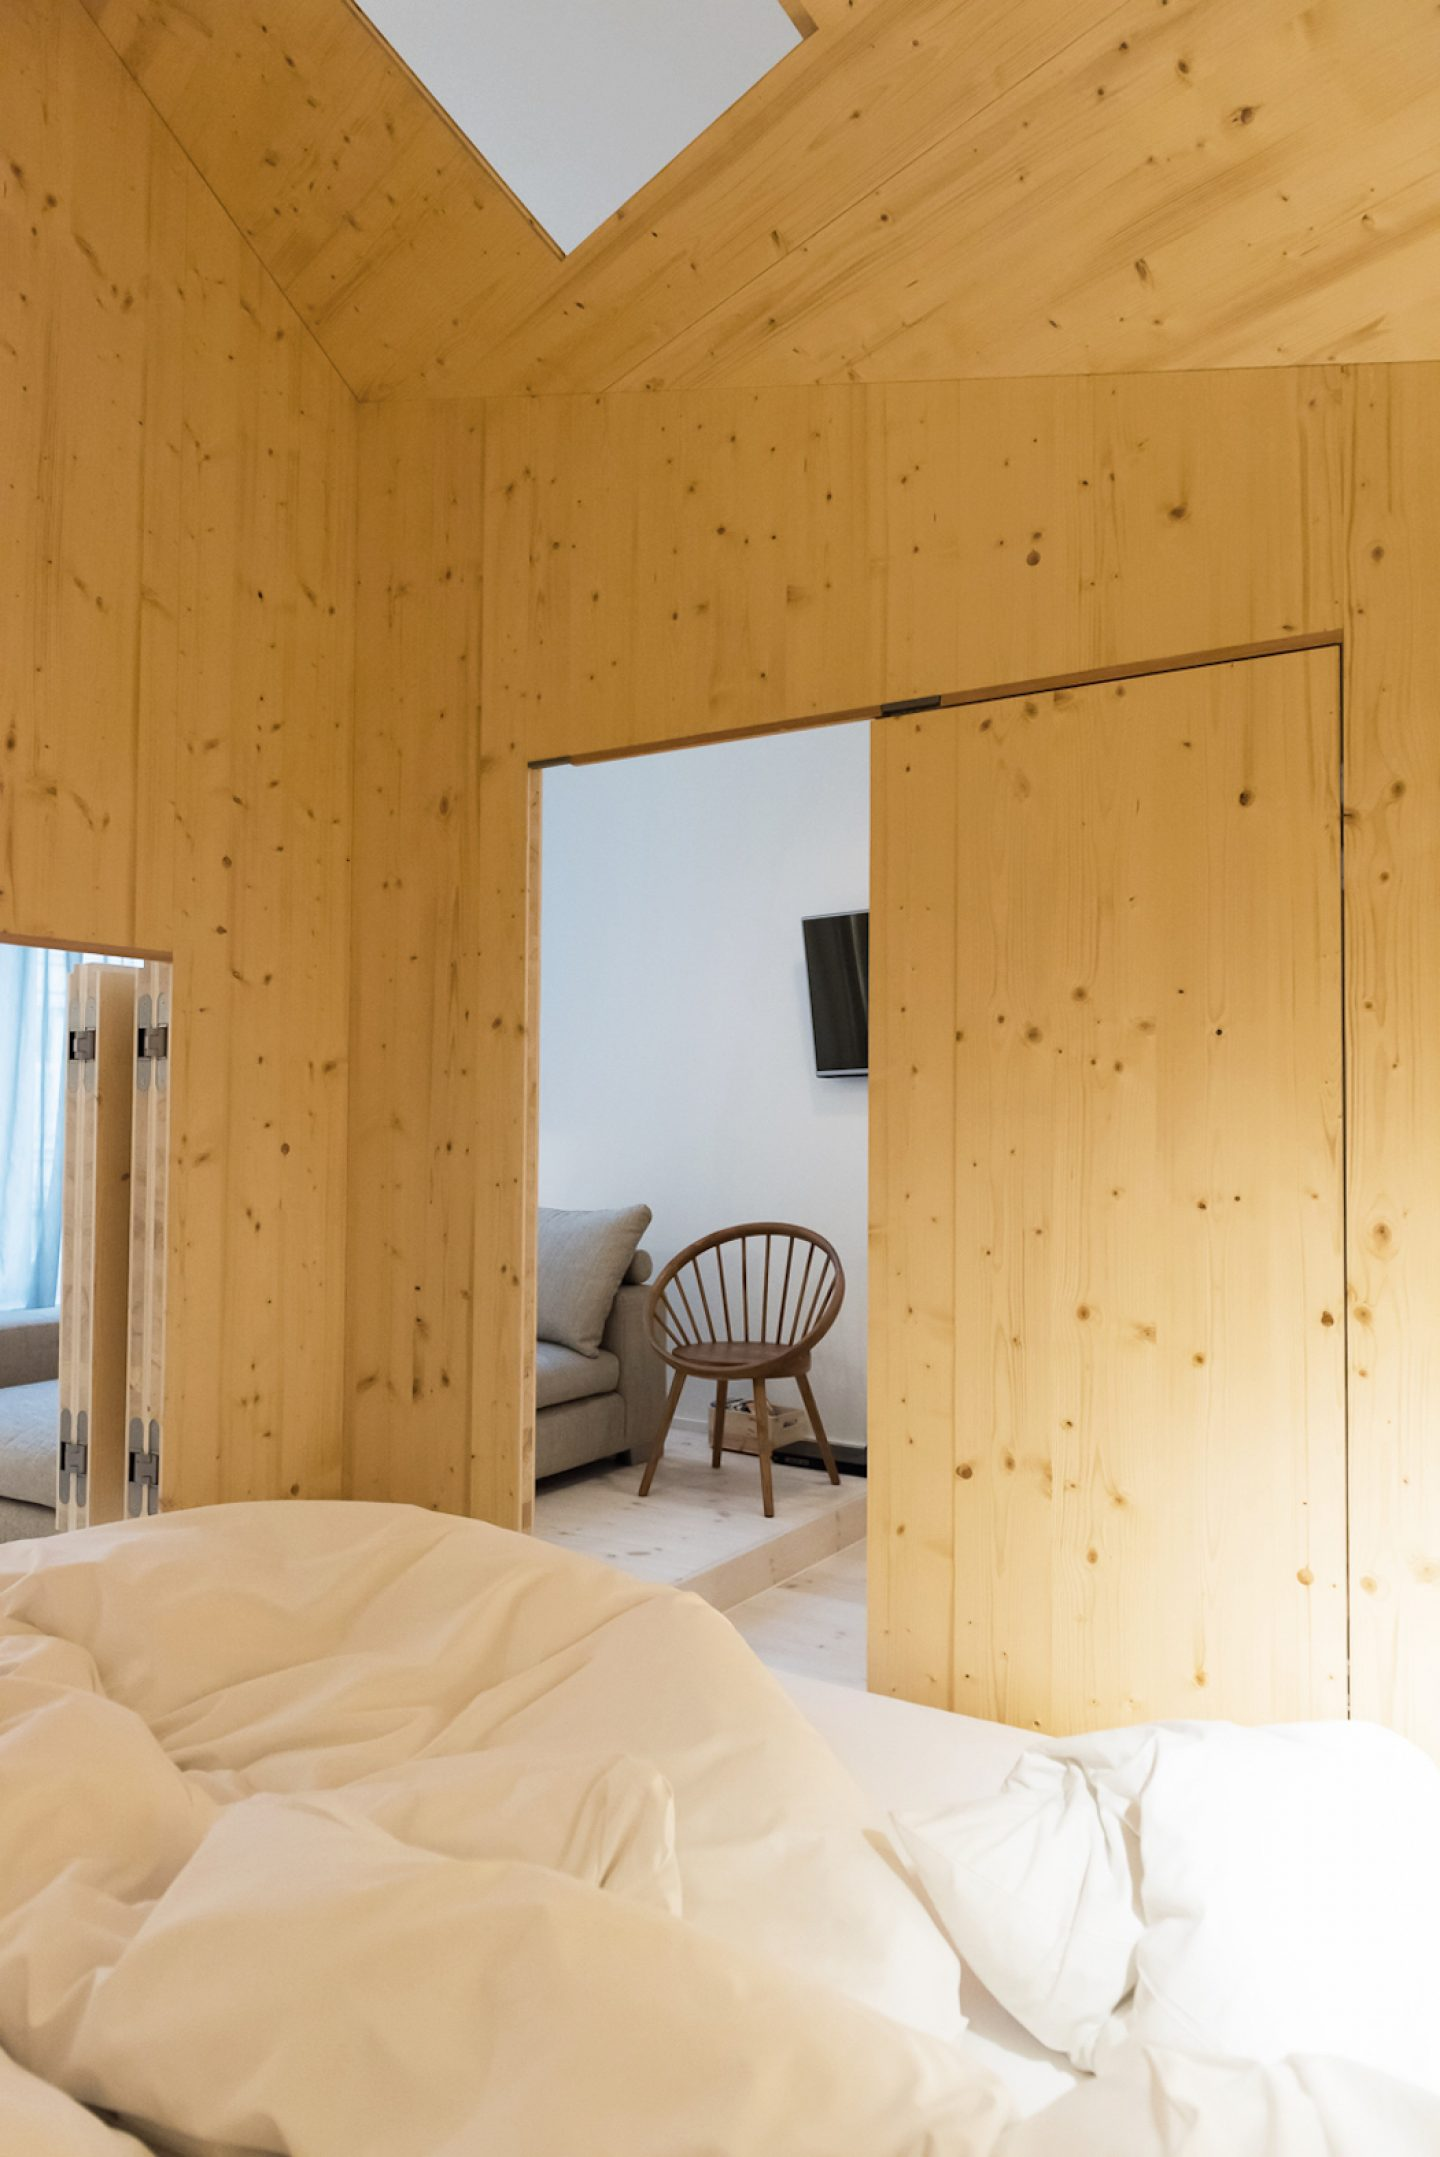 Room 304_Sigurd Larsen_Michelberger Hotel_Architecture Danish design berlin_photo x James Pfaff 7